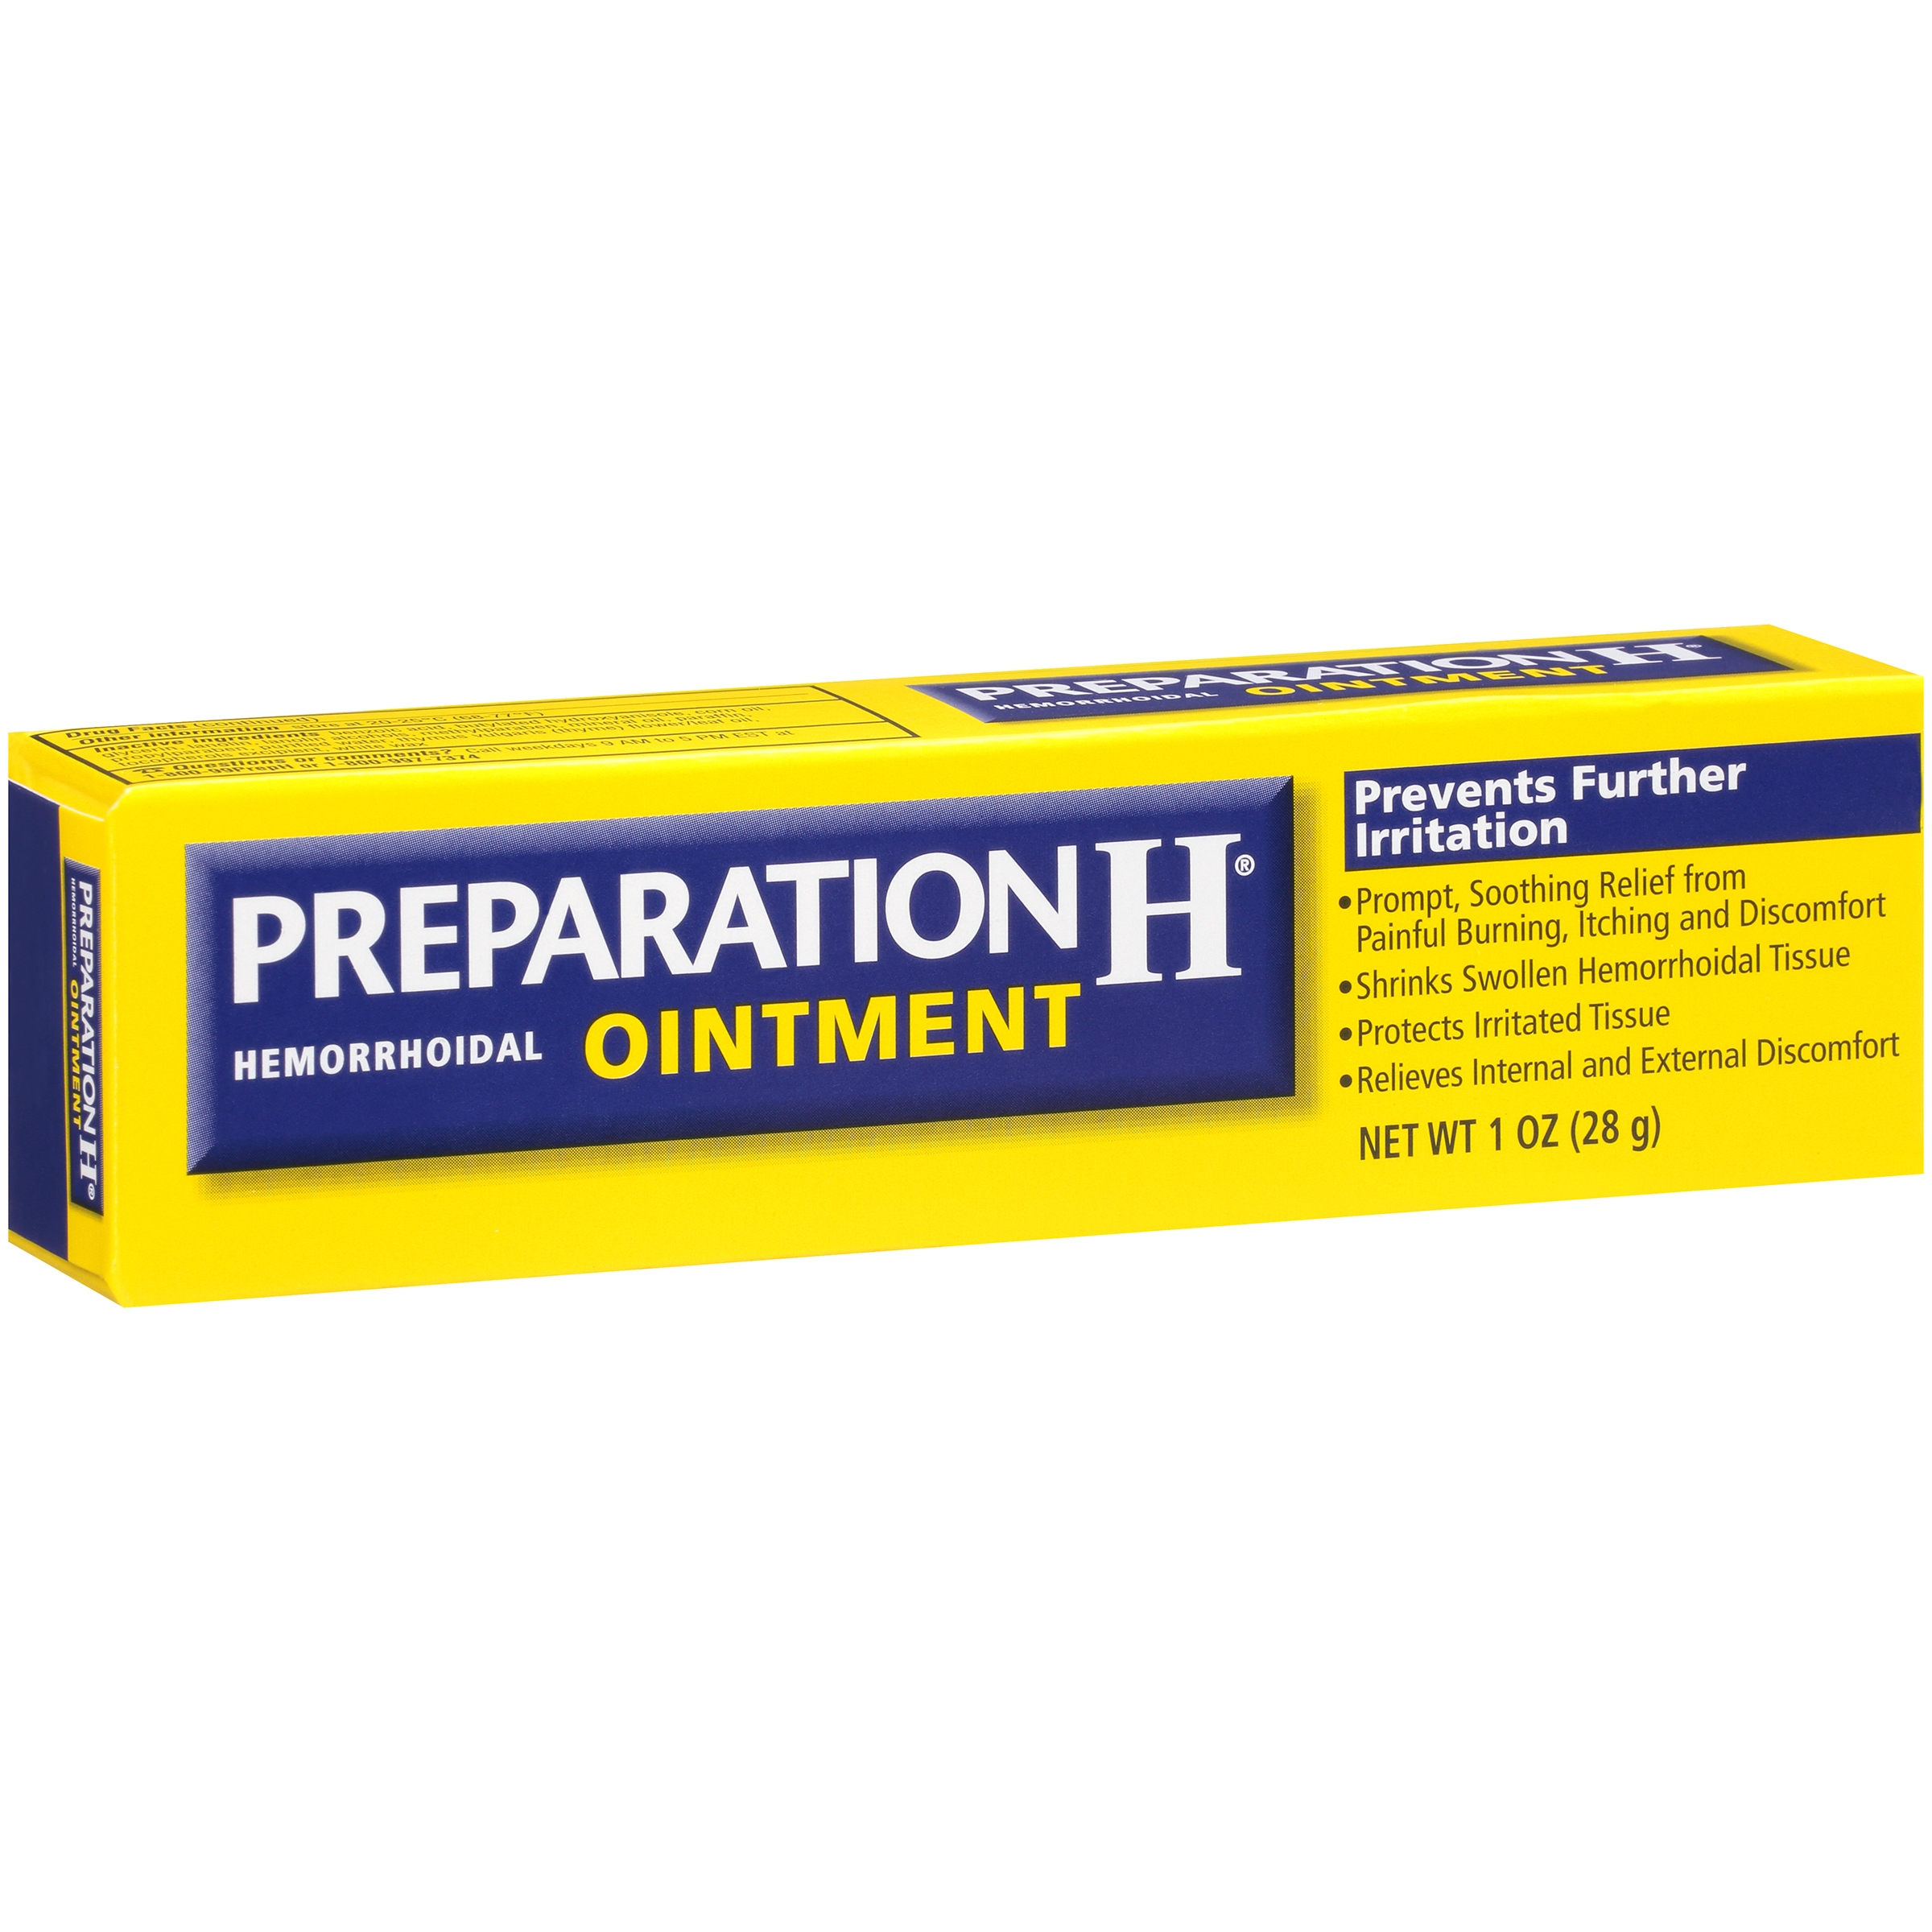 Preparation H Hemorrhoid Symptom Treatment Ointment (1.0 Ounce), Itching, Burning & Discomfort Relief, Tube